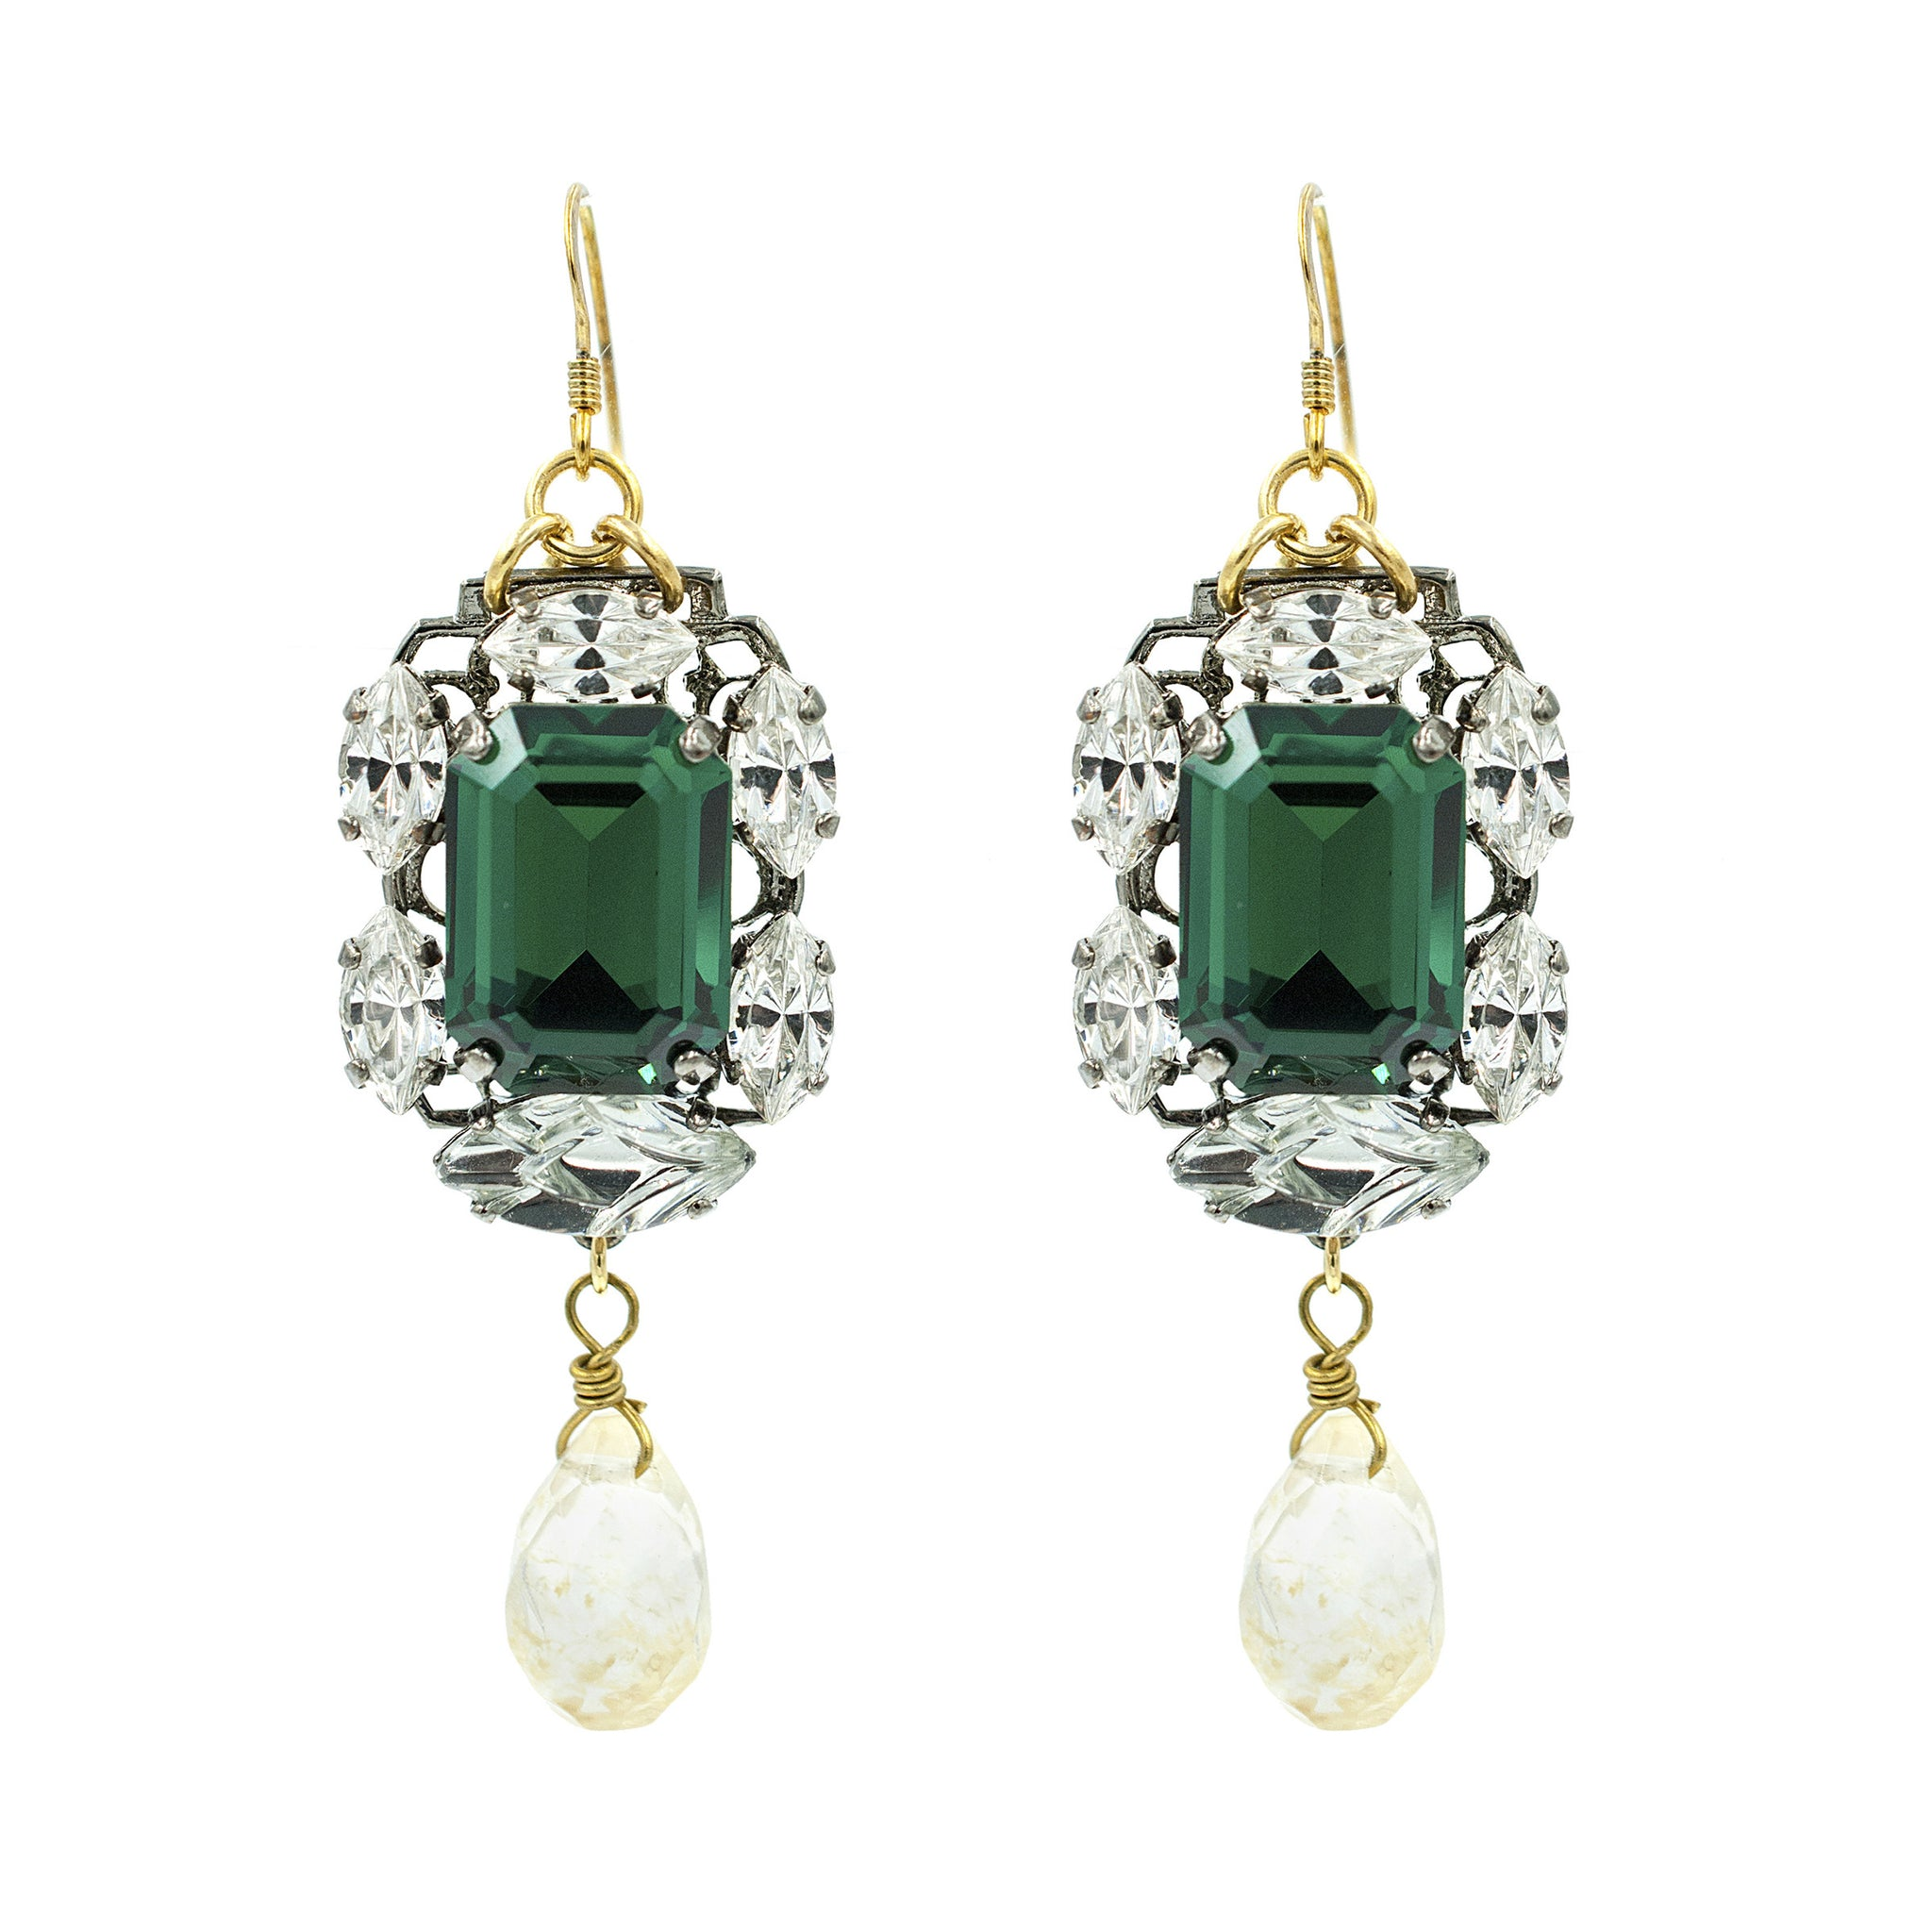 mm earrings pendant switzerland emerald products little simulated jewellery